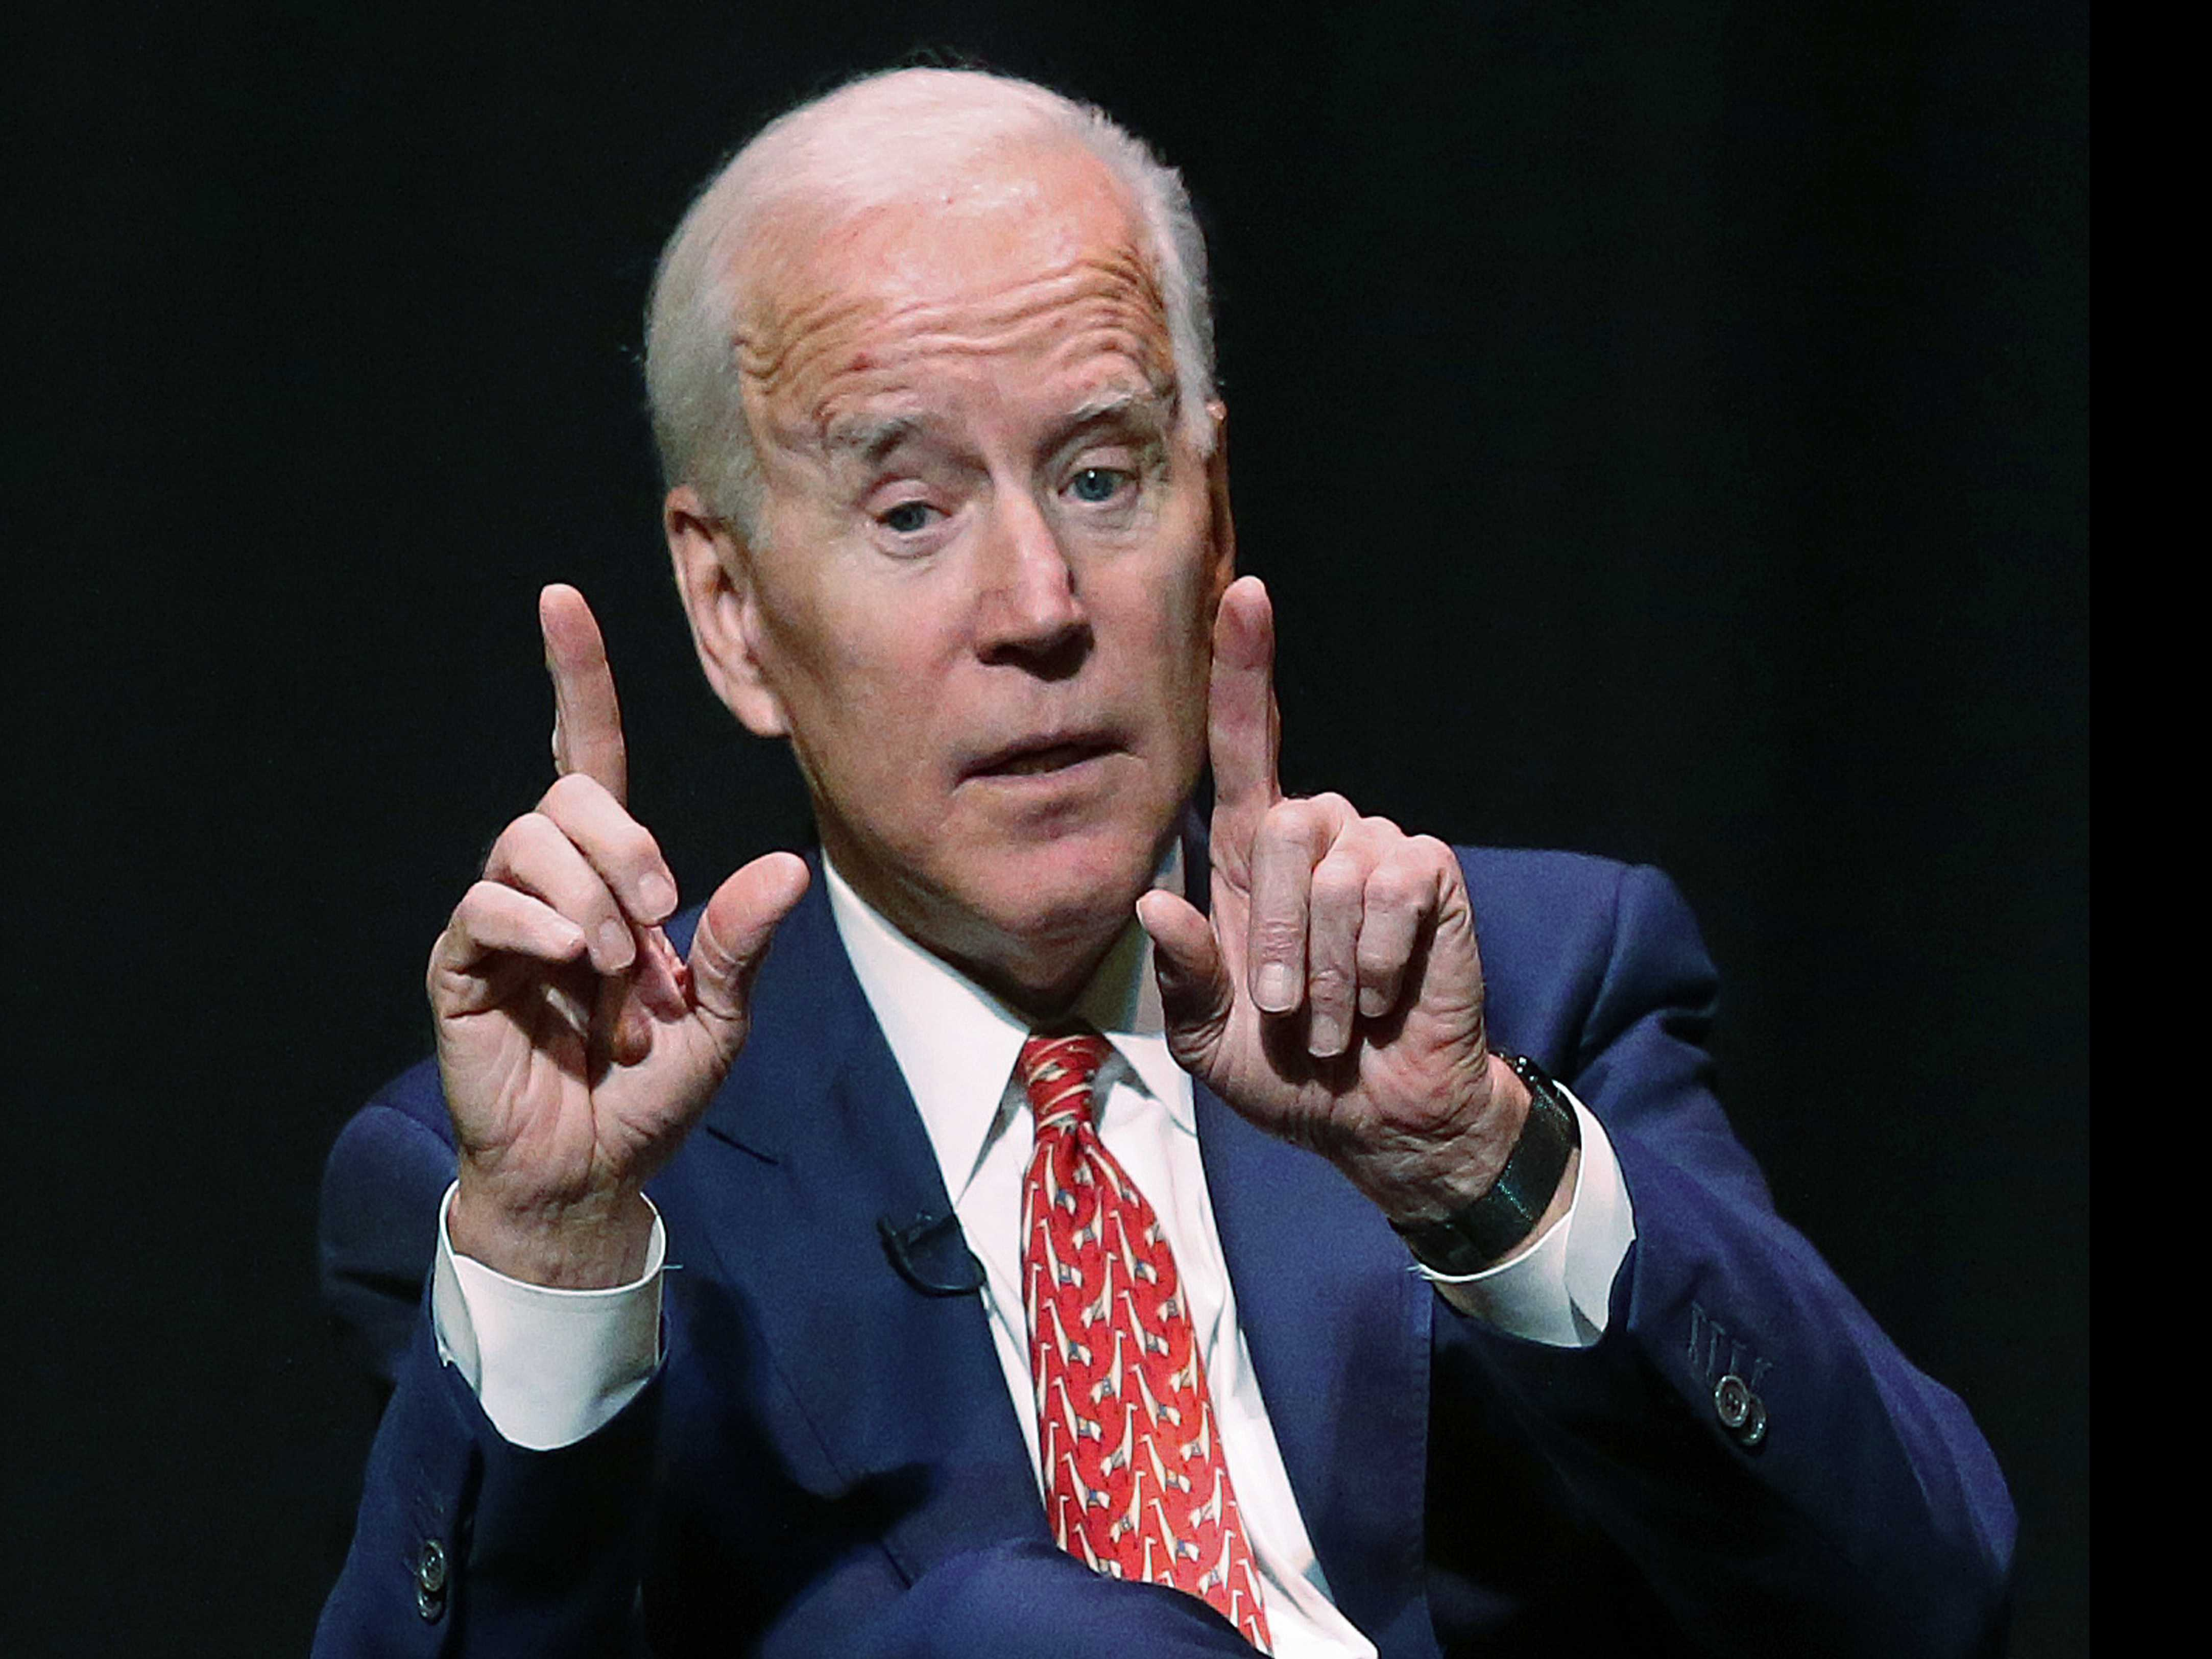 As Democratic Field Expands, Biden Waits on the Sidelines